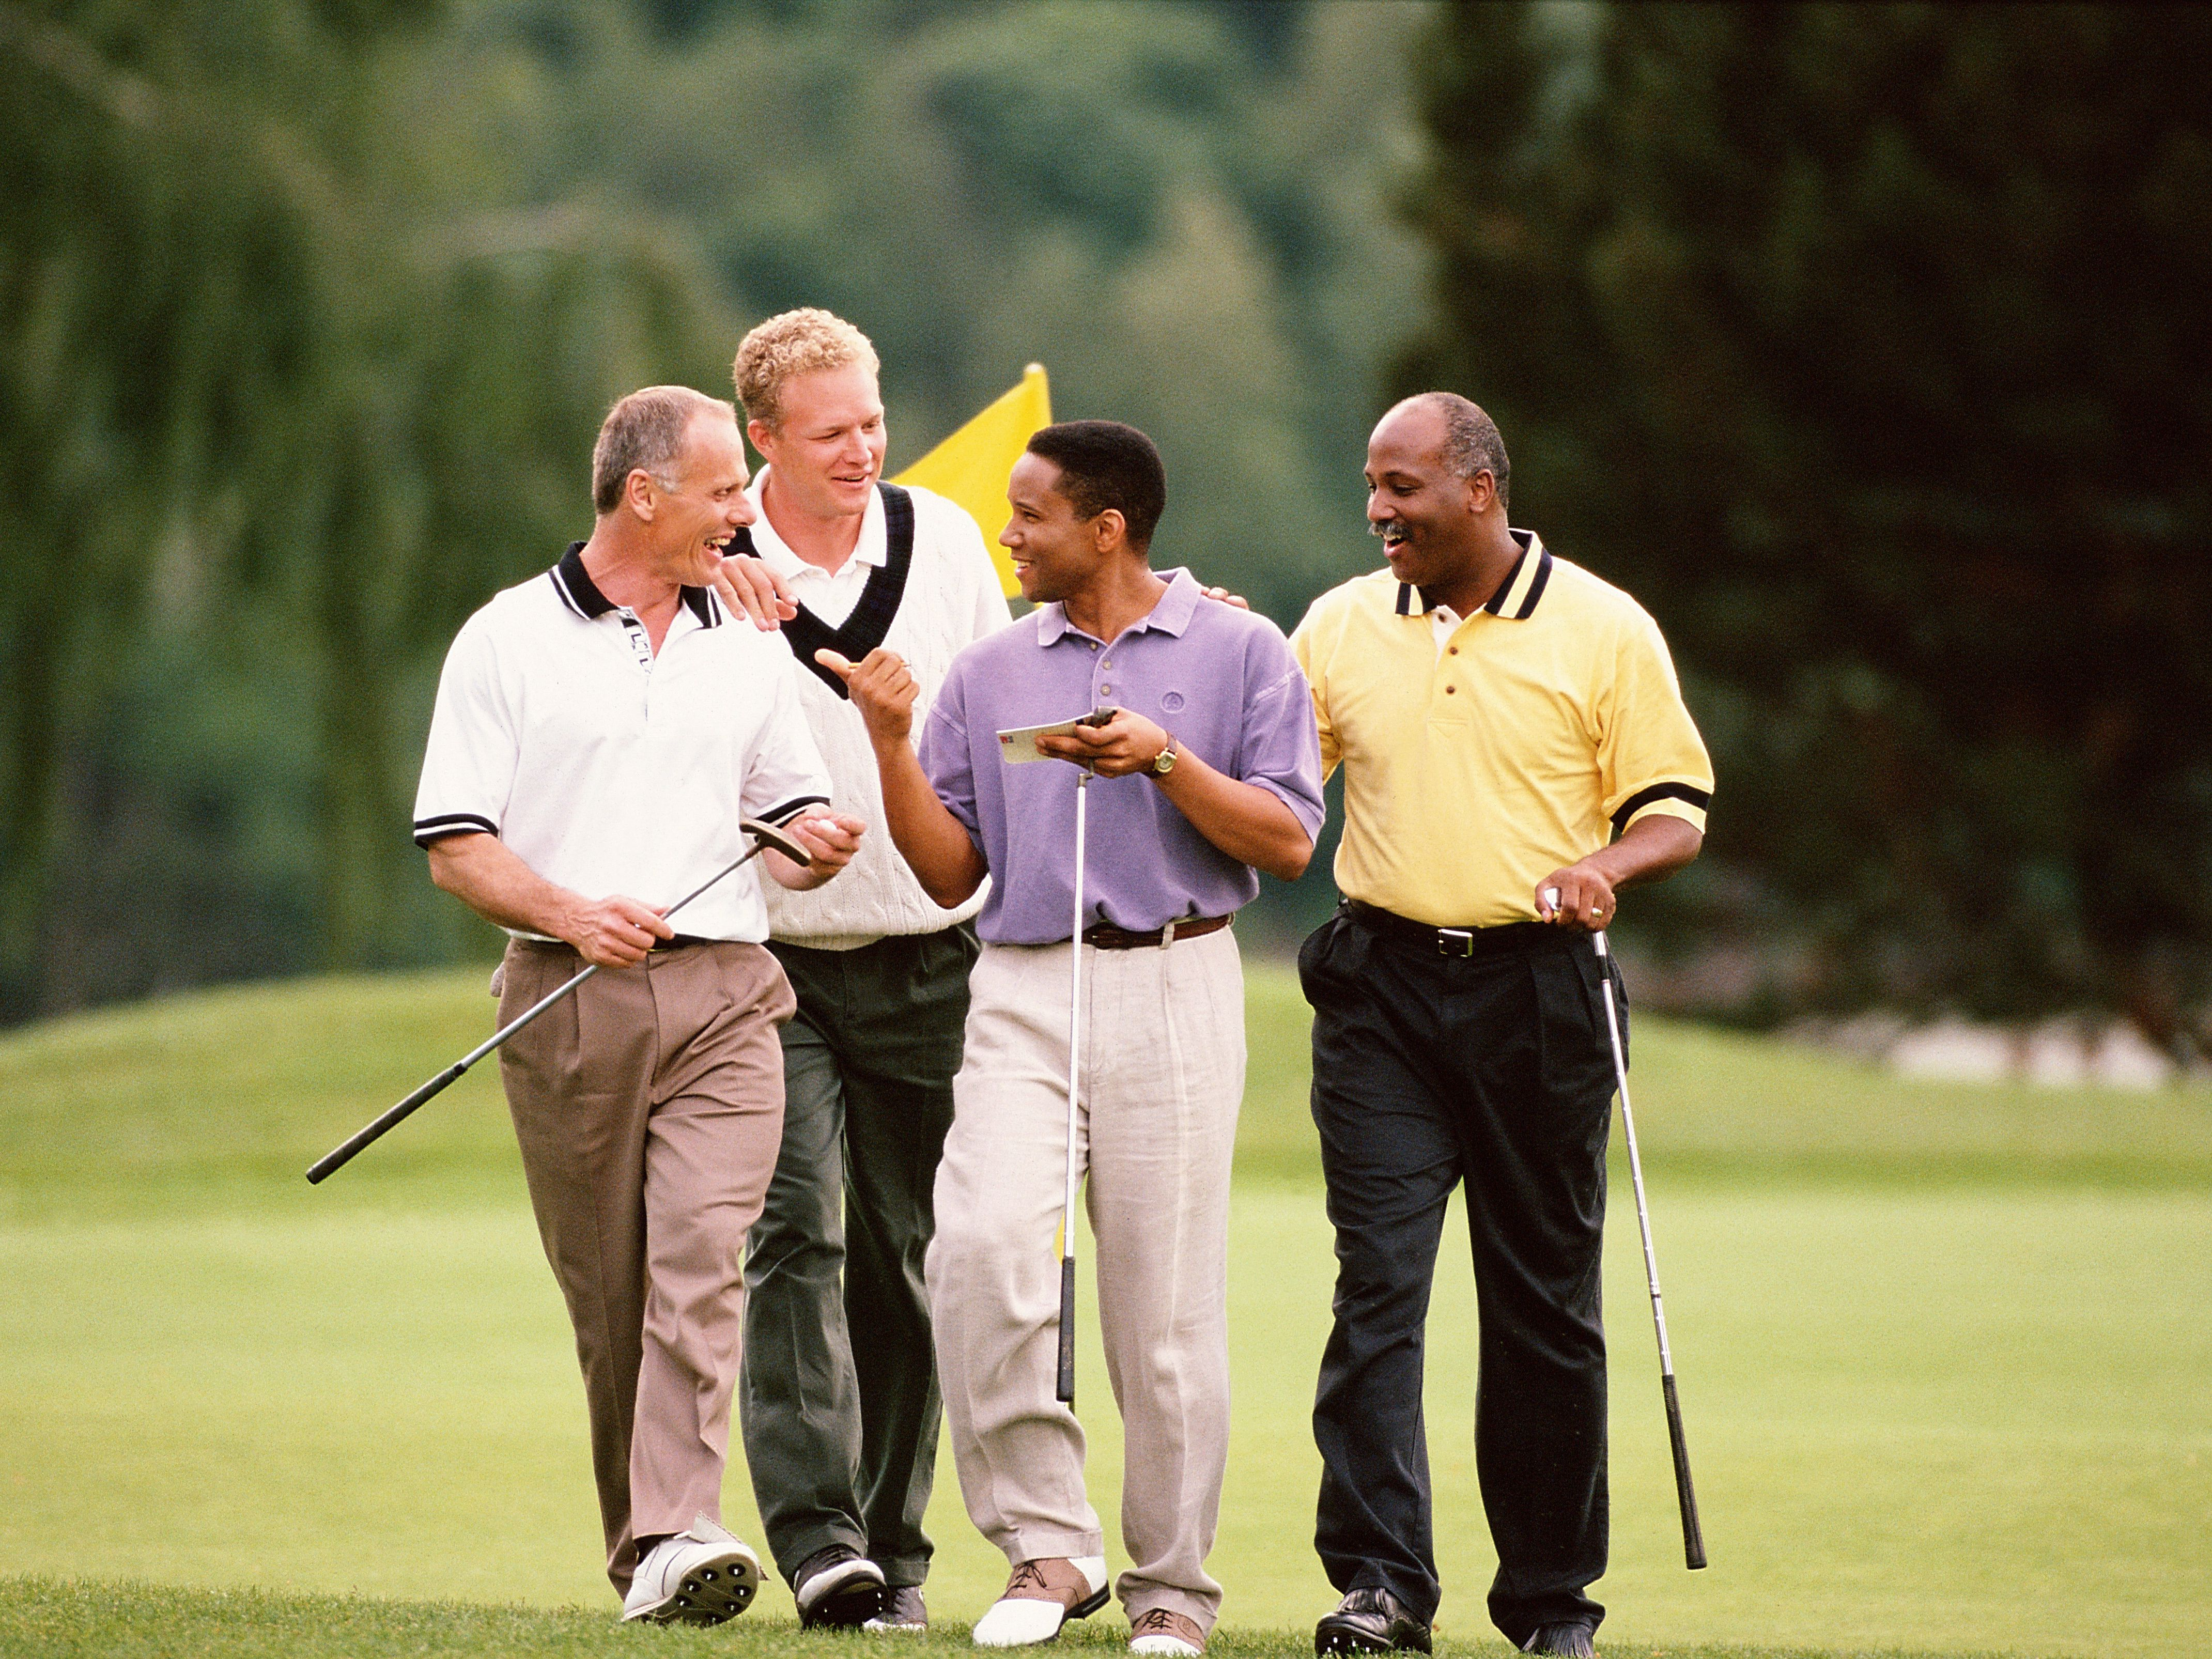 Golf betting games junk overbetting rugs